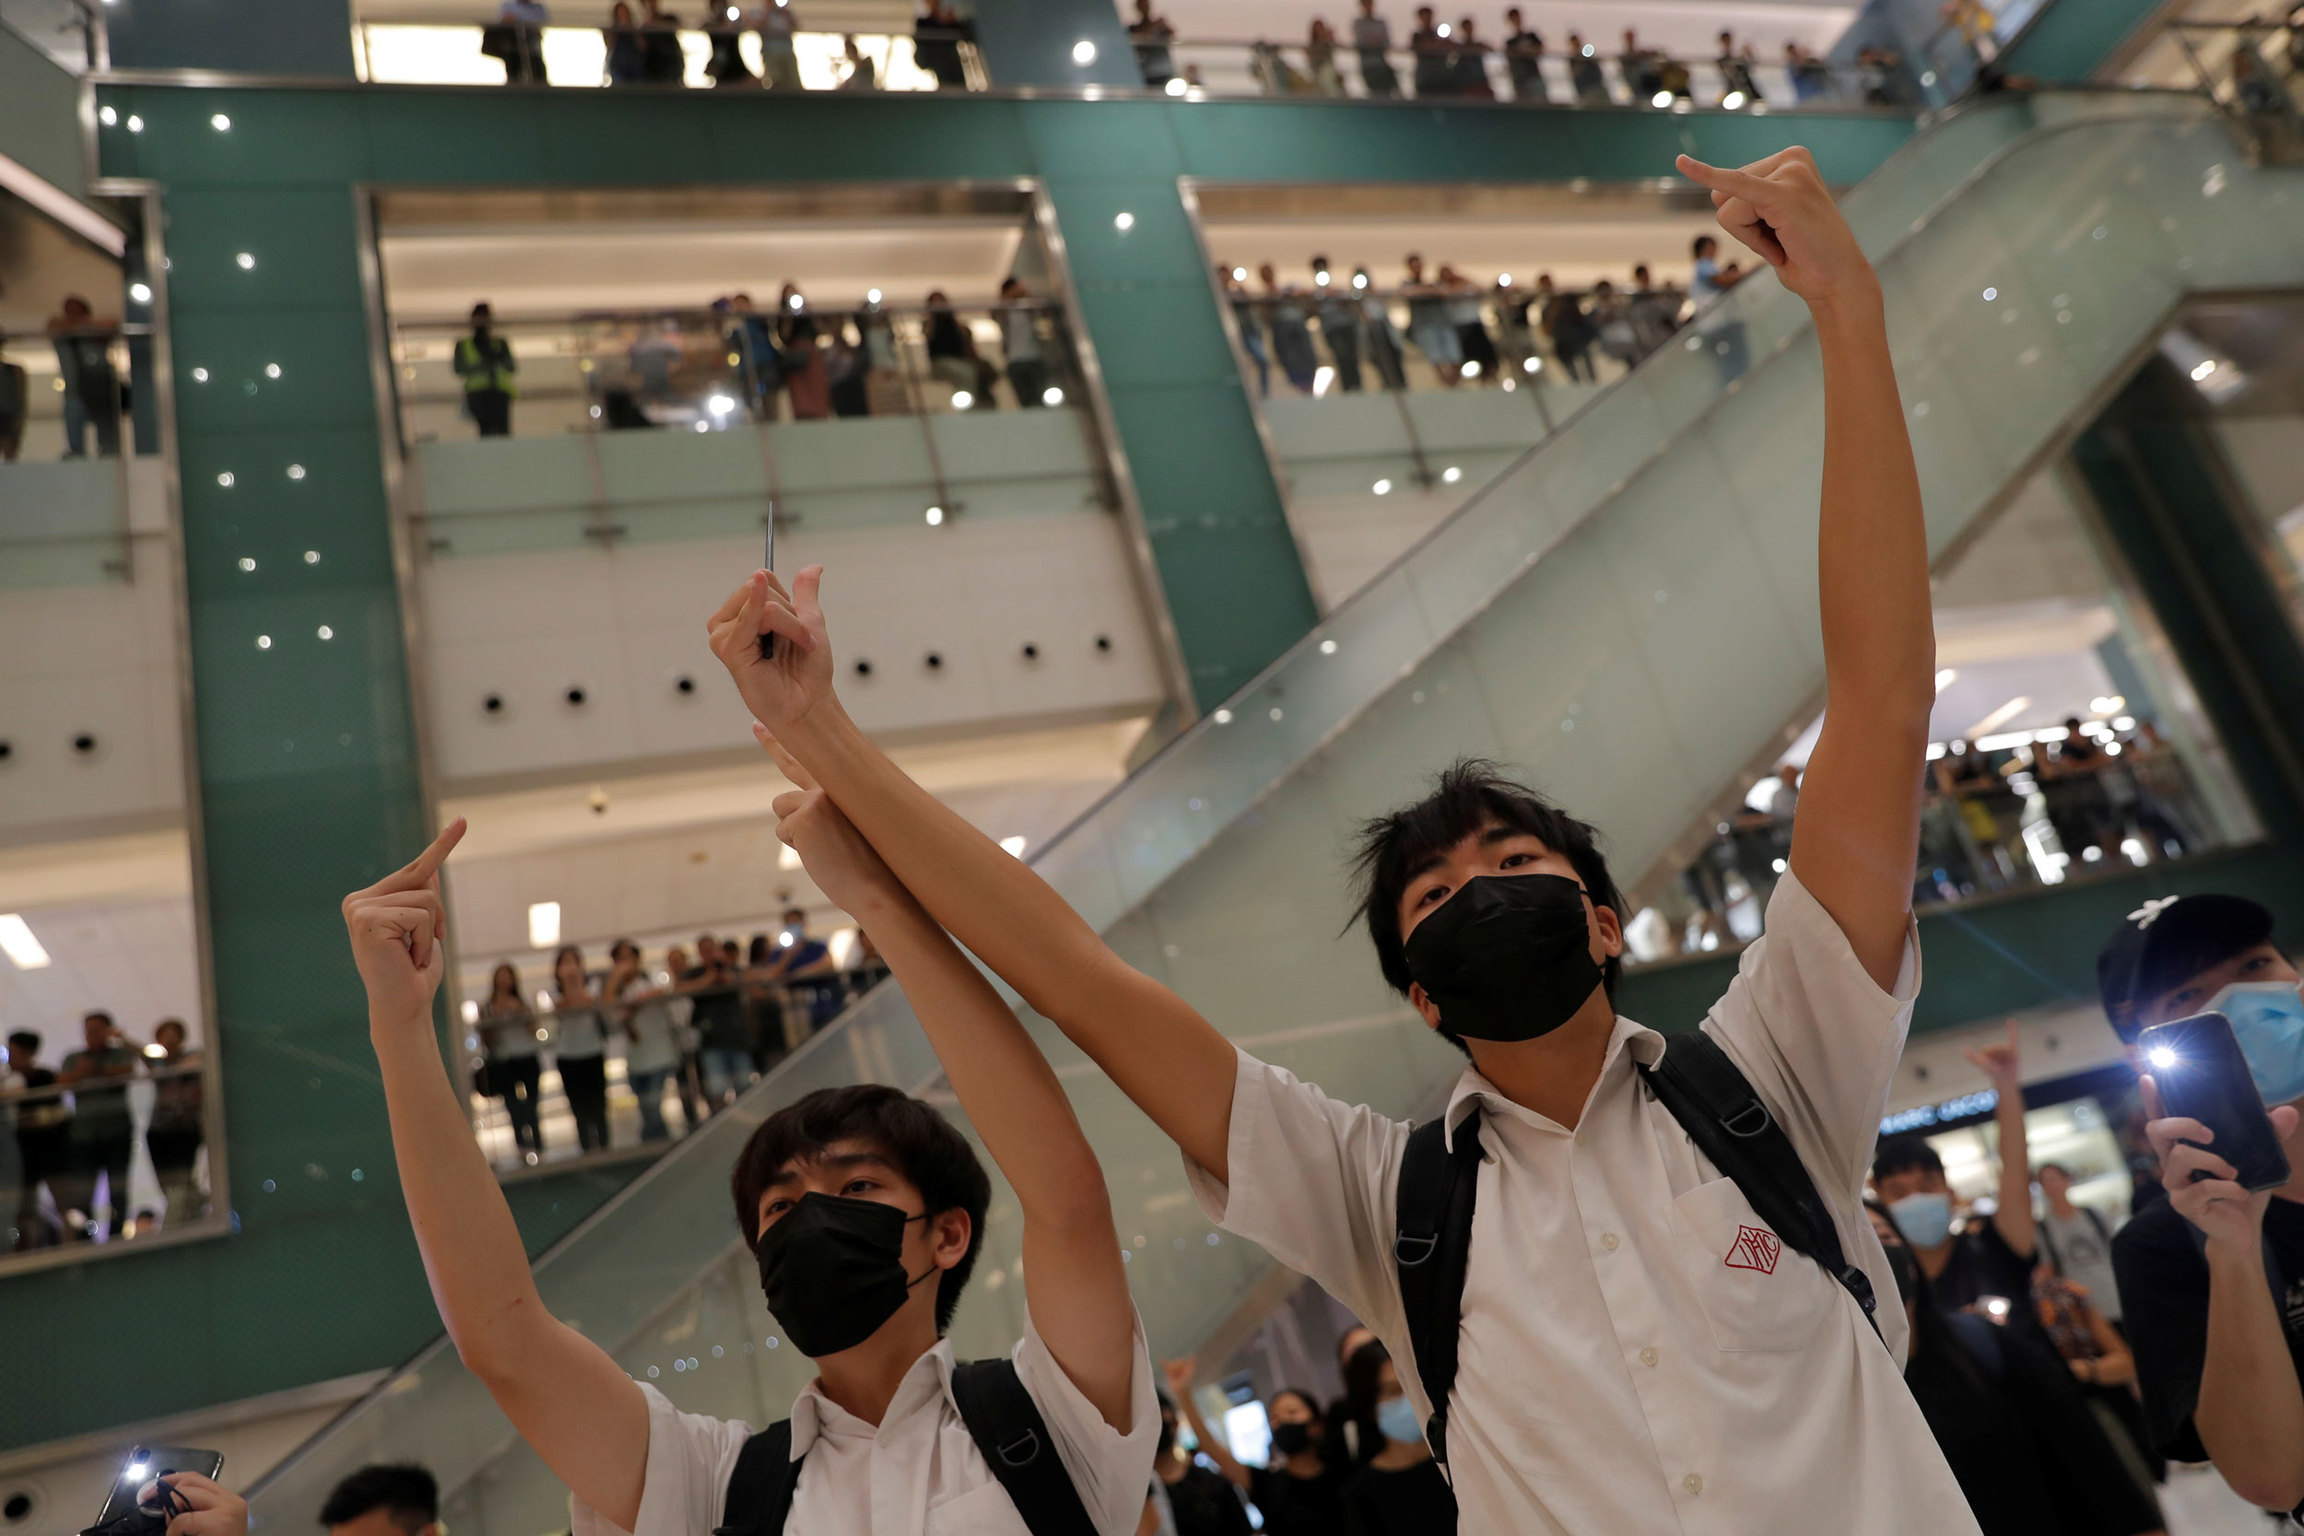 Two men are shown wearing back packs and black masks with their arms raised in the air gesturing.